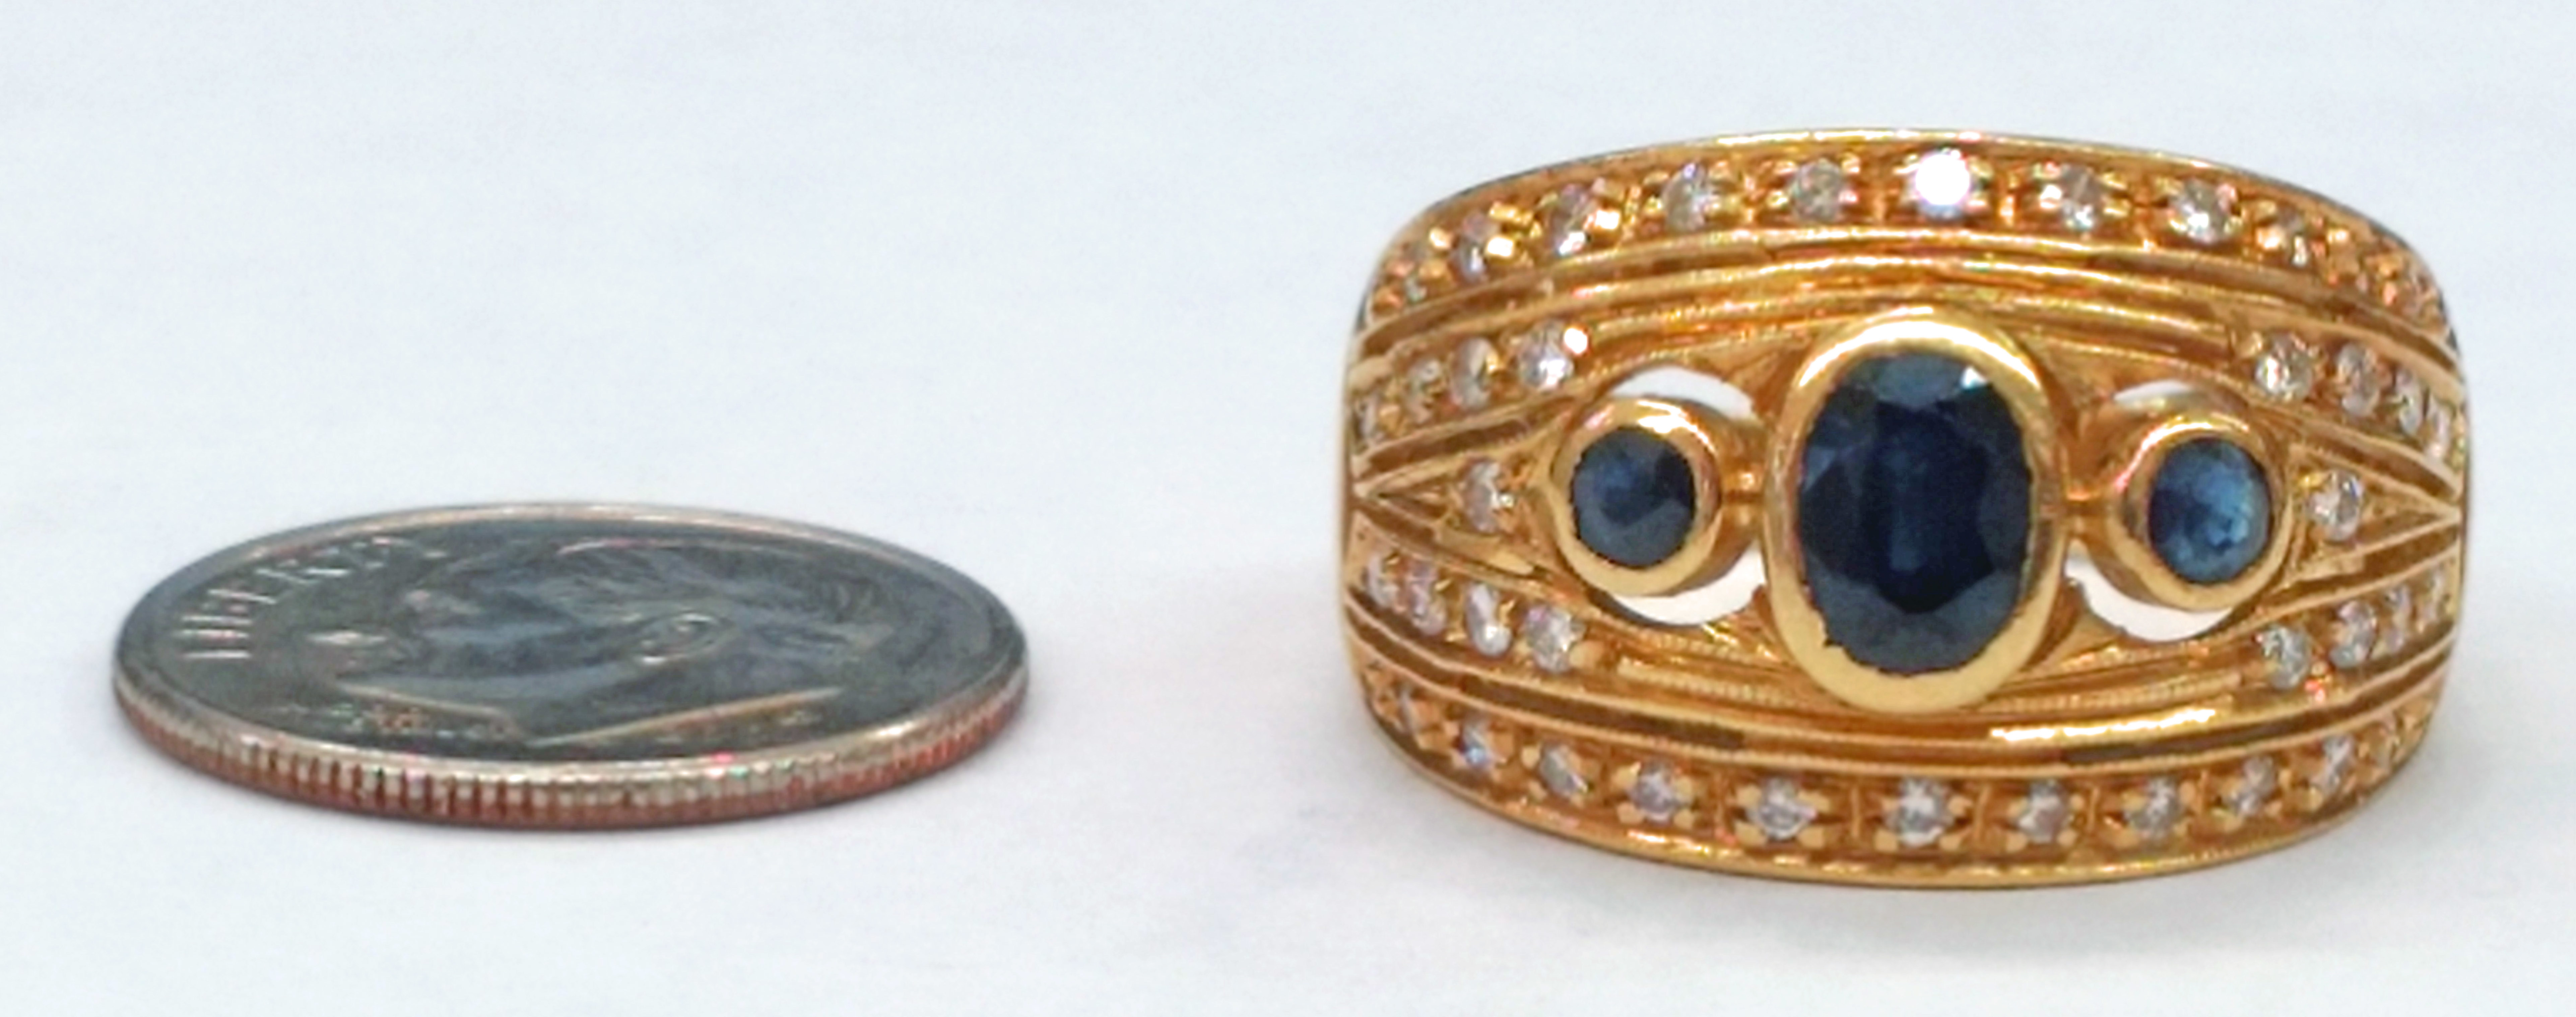 Blue Sapphires and Diamonds Set in 18kt Yellow Gold Ring - Size 8  -  SOLD AS IS